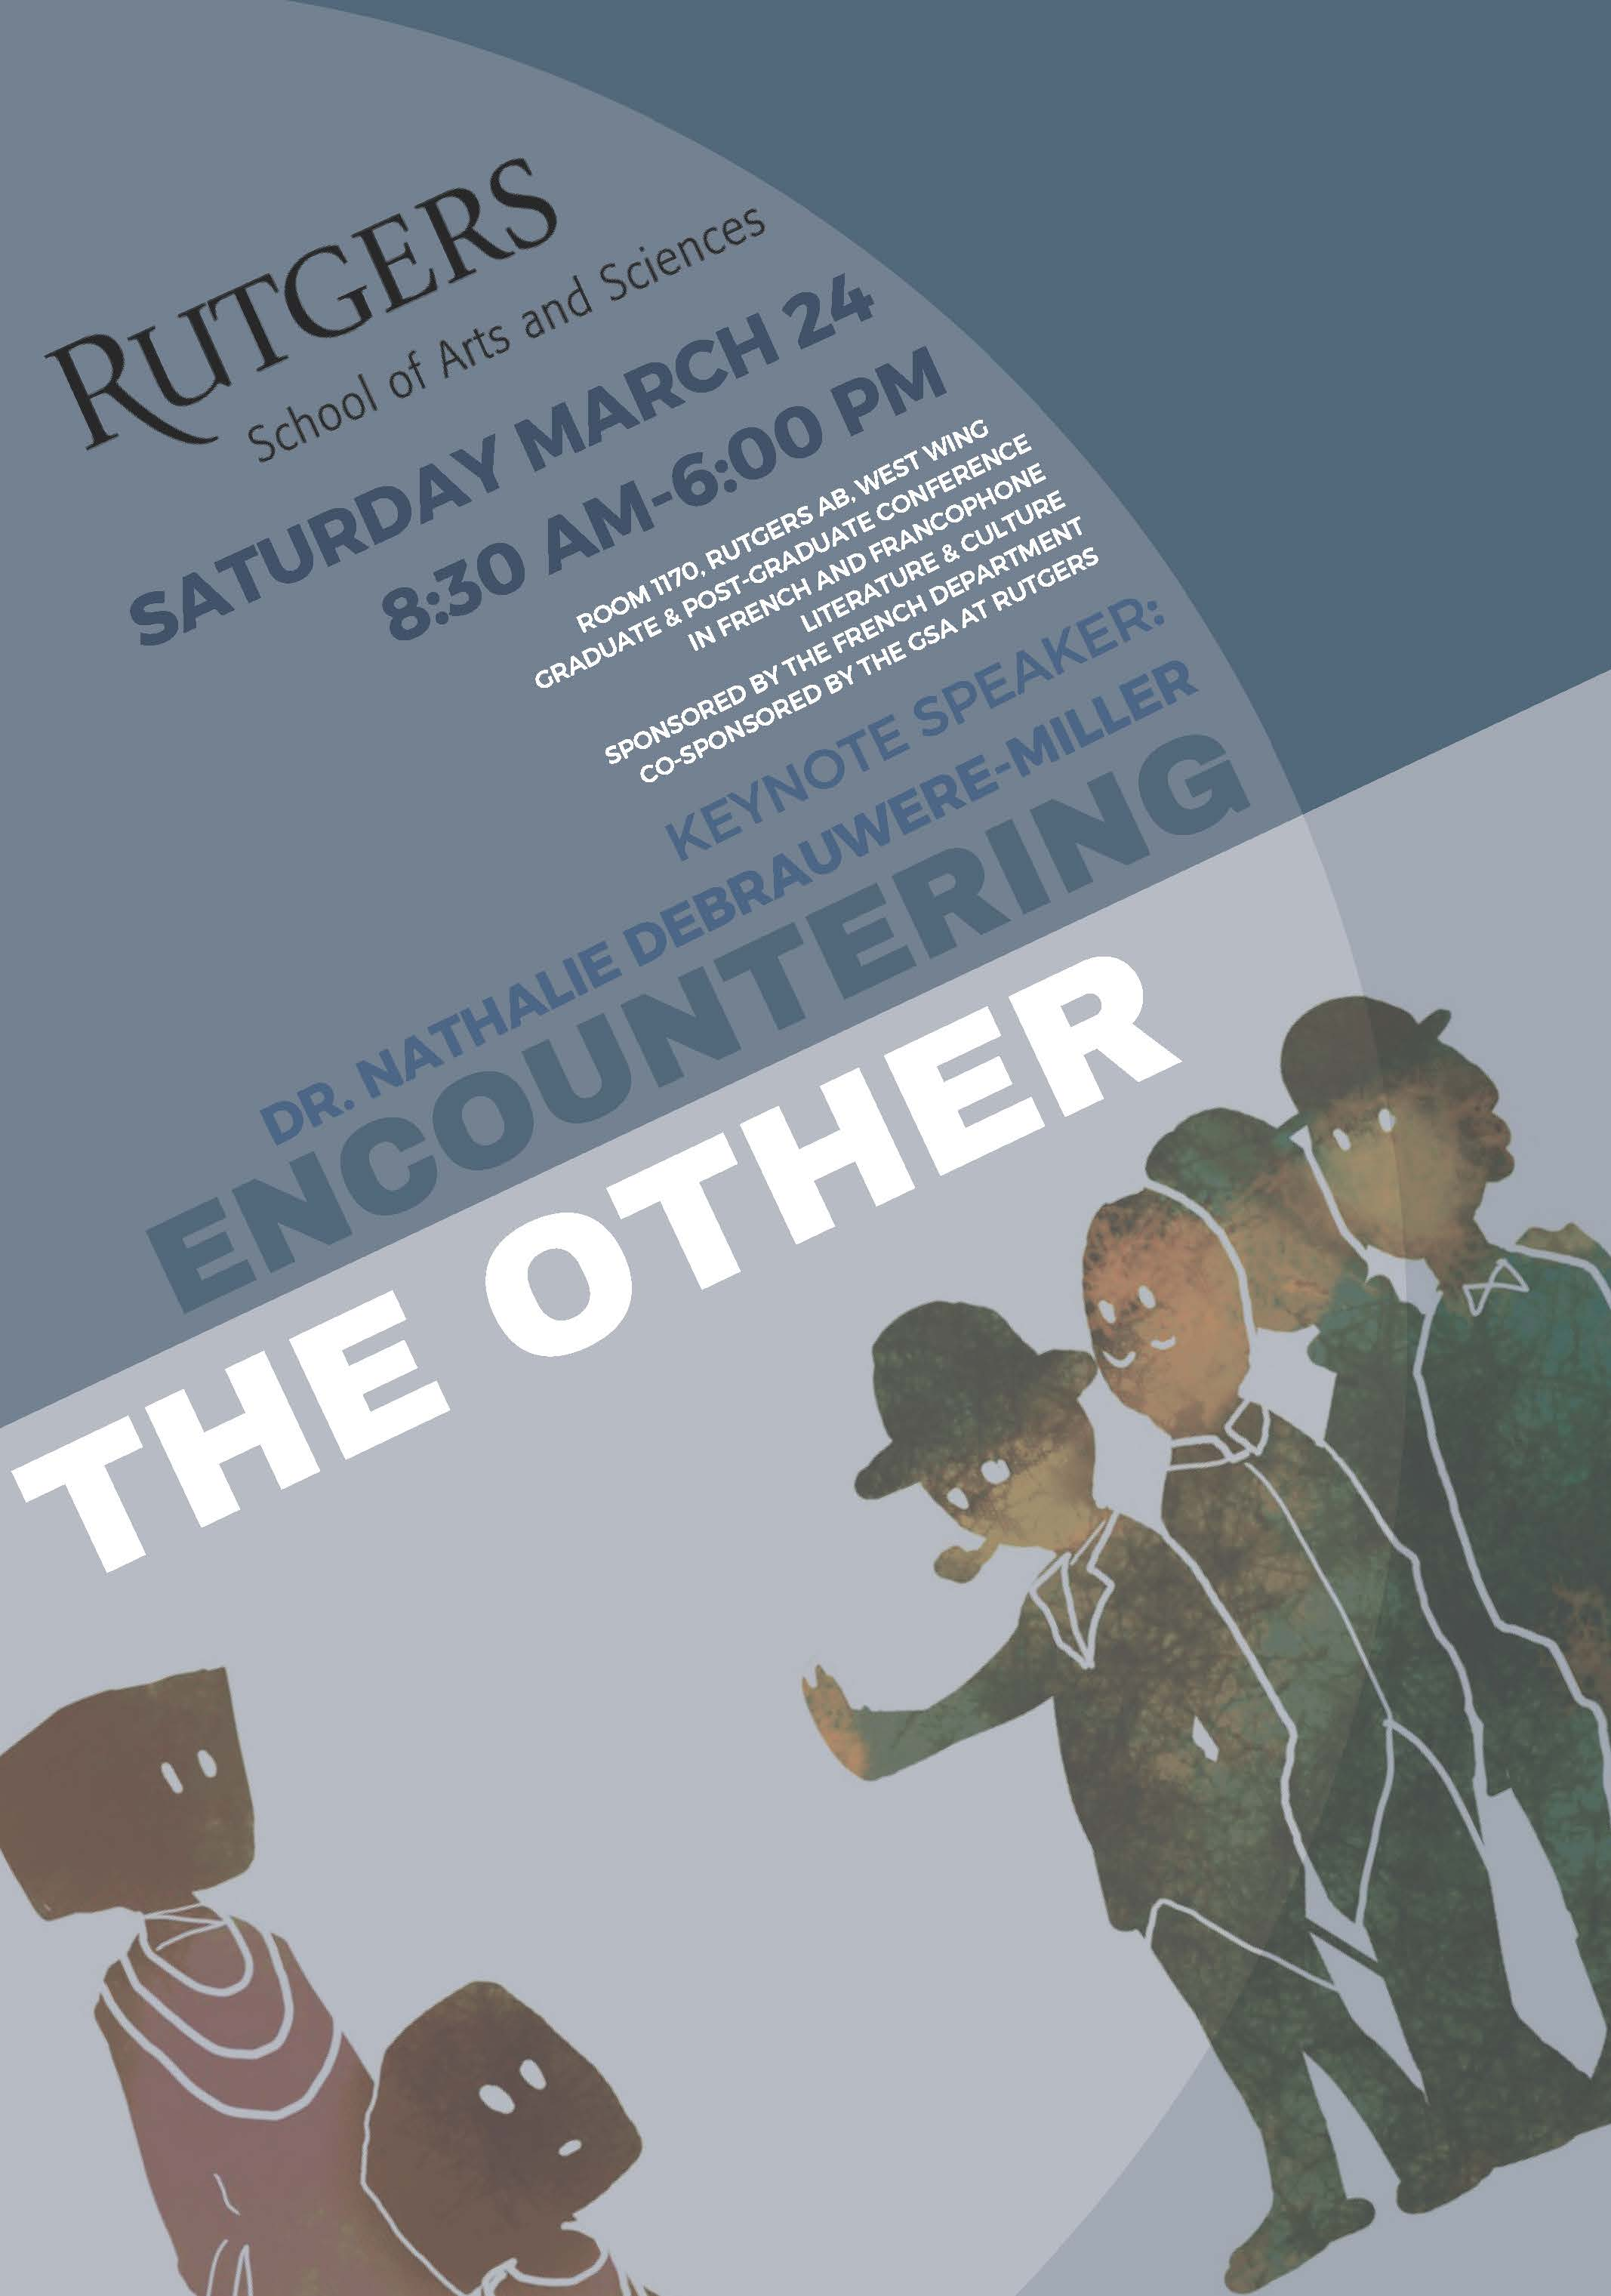 Encountering the Other: Graduate & Post-Graduate Conference in French and Francophone Literature & Culture. Sponsored by the French Department; Co-sponsored by the GSA at Rutgers.  Saturday, March 24, 8:30am - 6:00pm. March 24, 2018